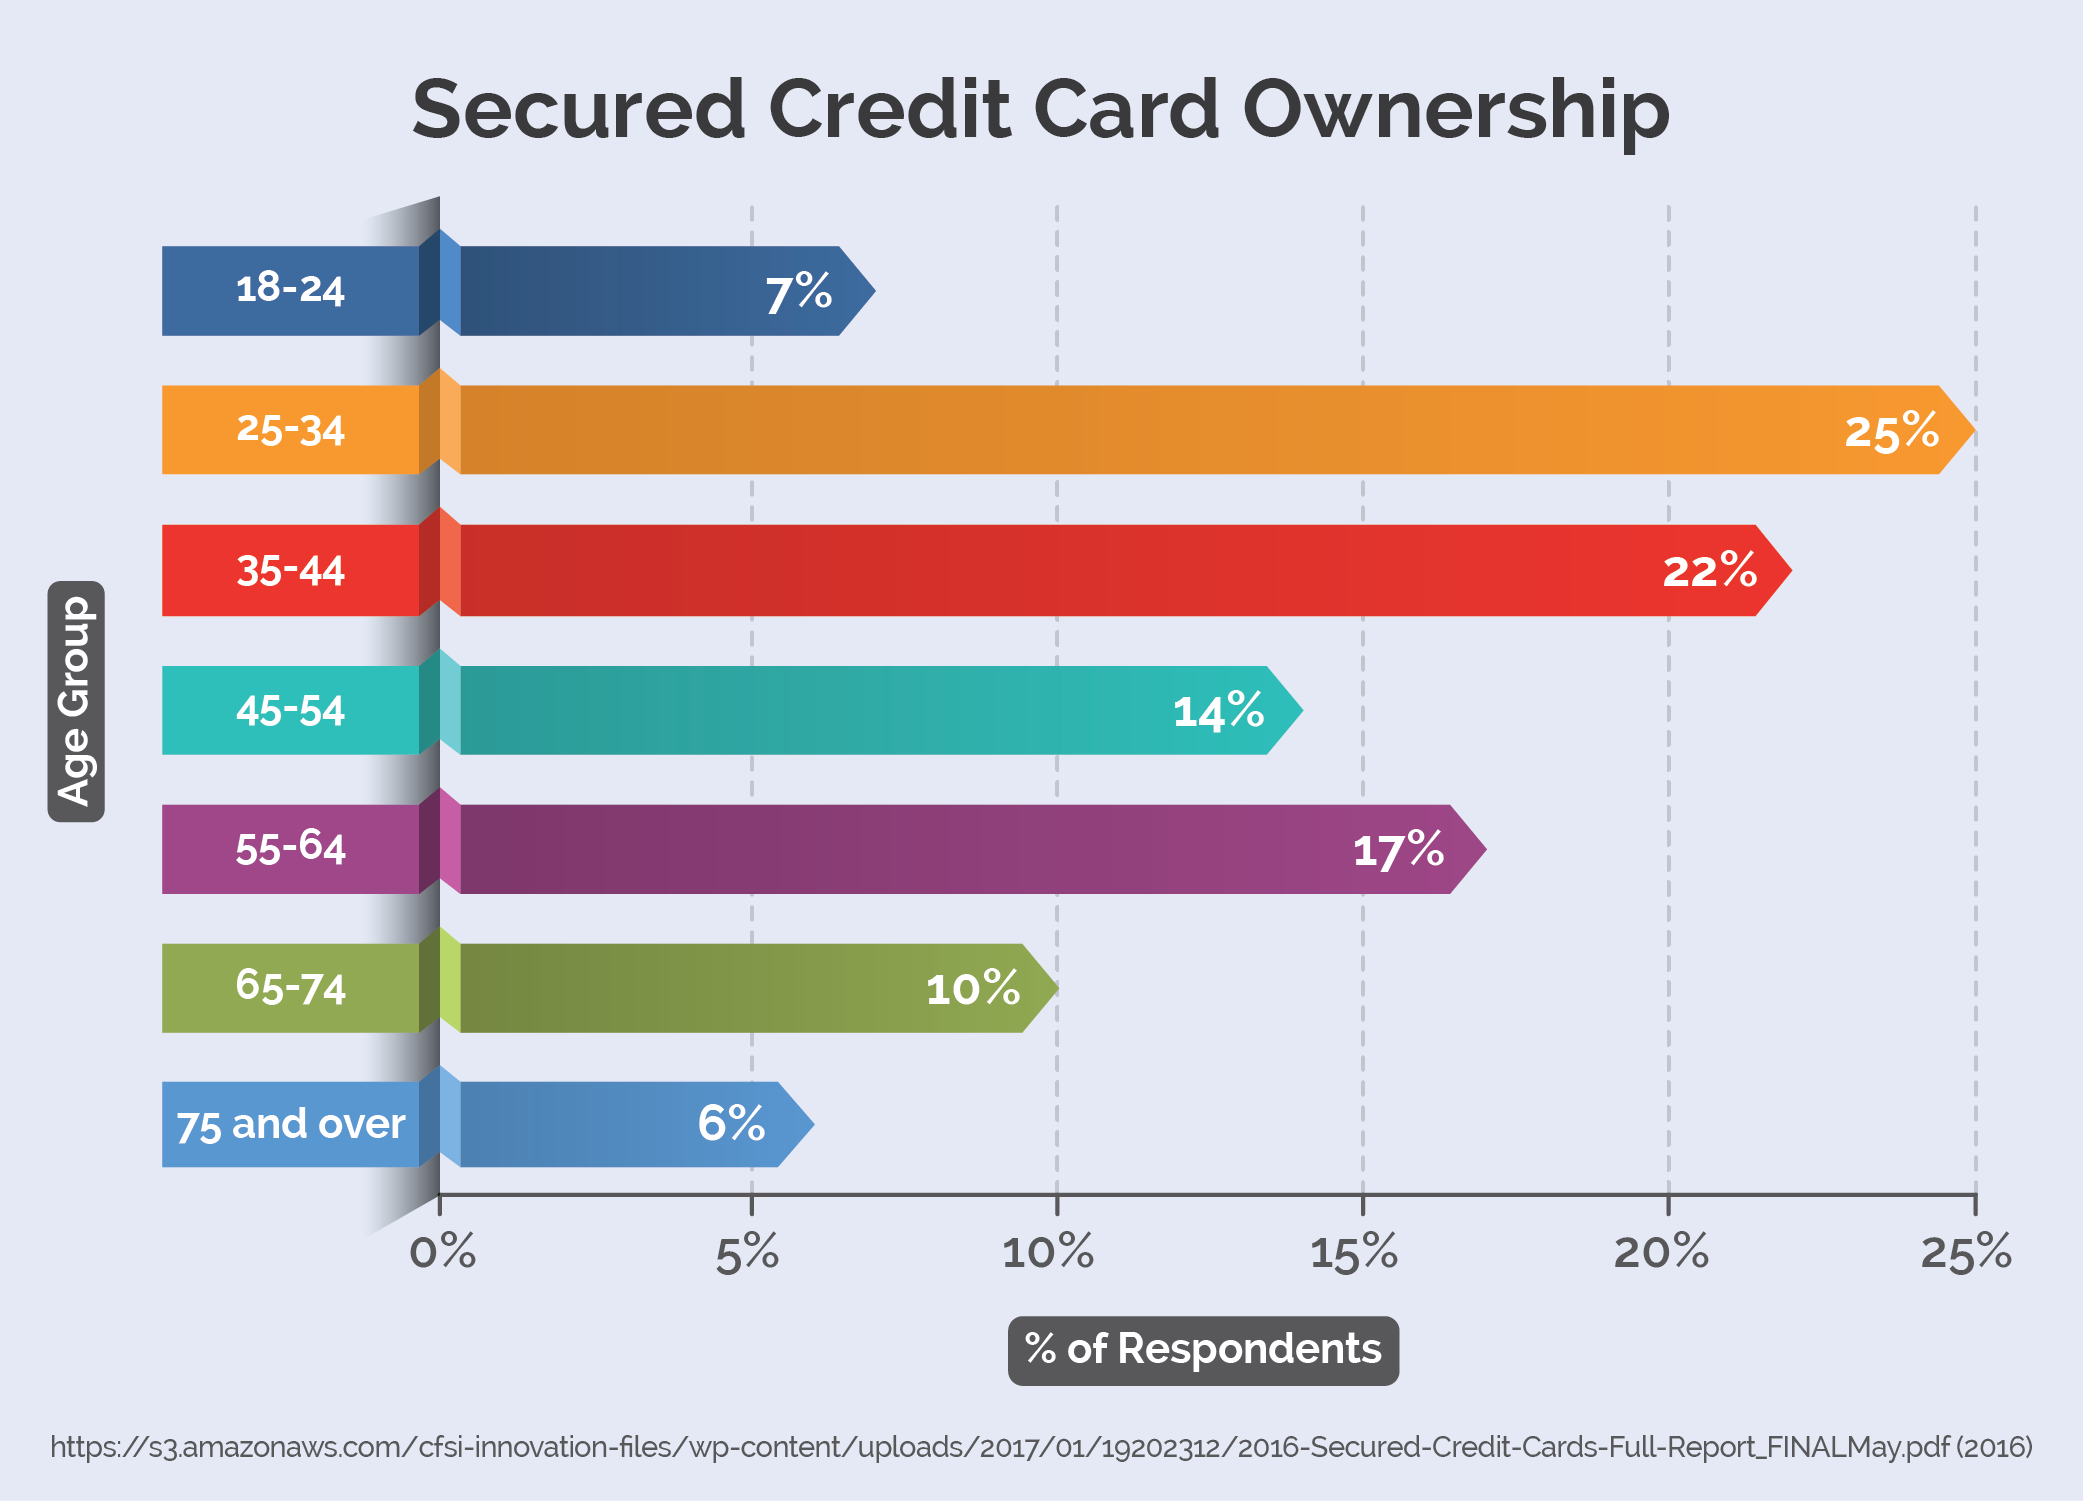 Secured Credit Card Ownership